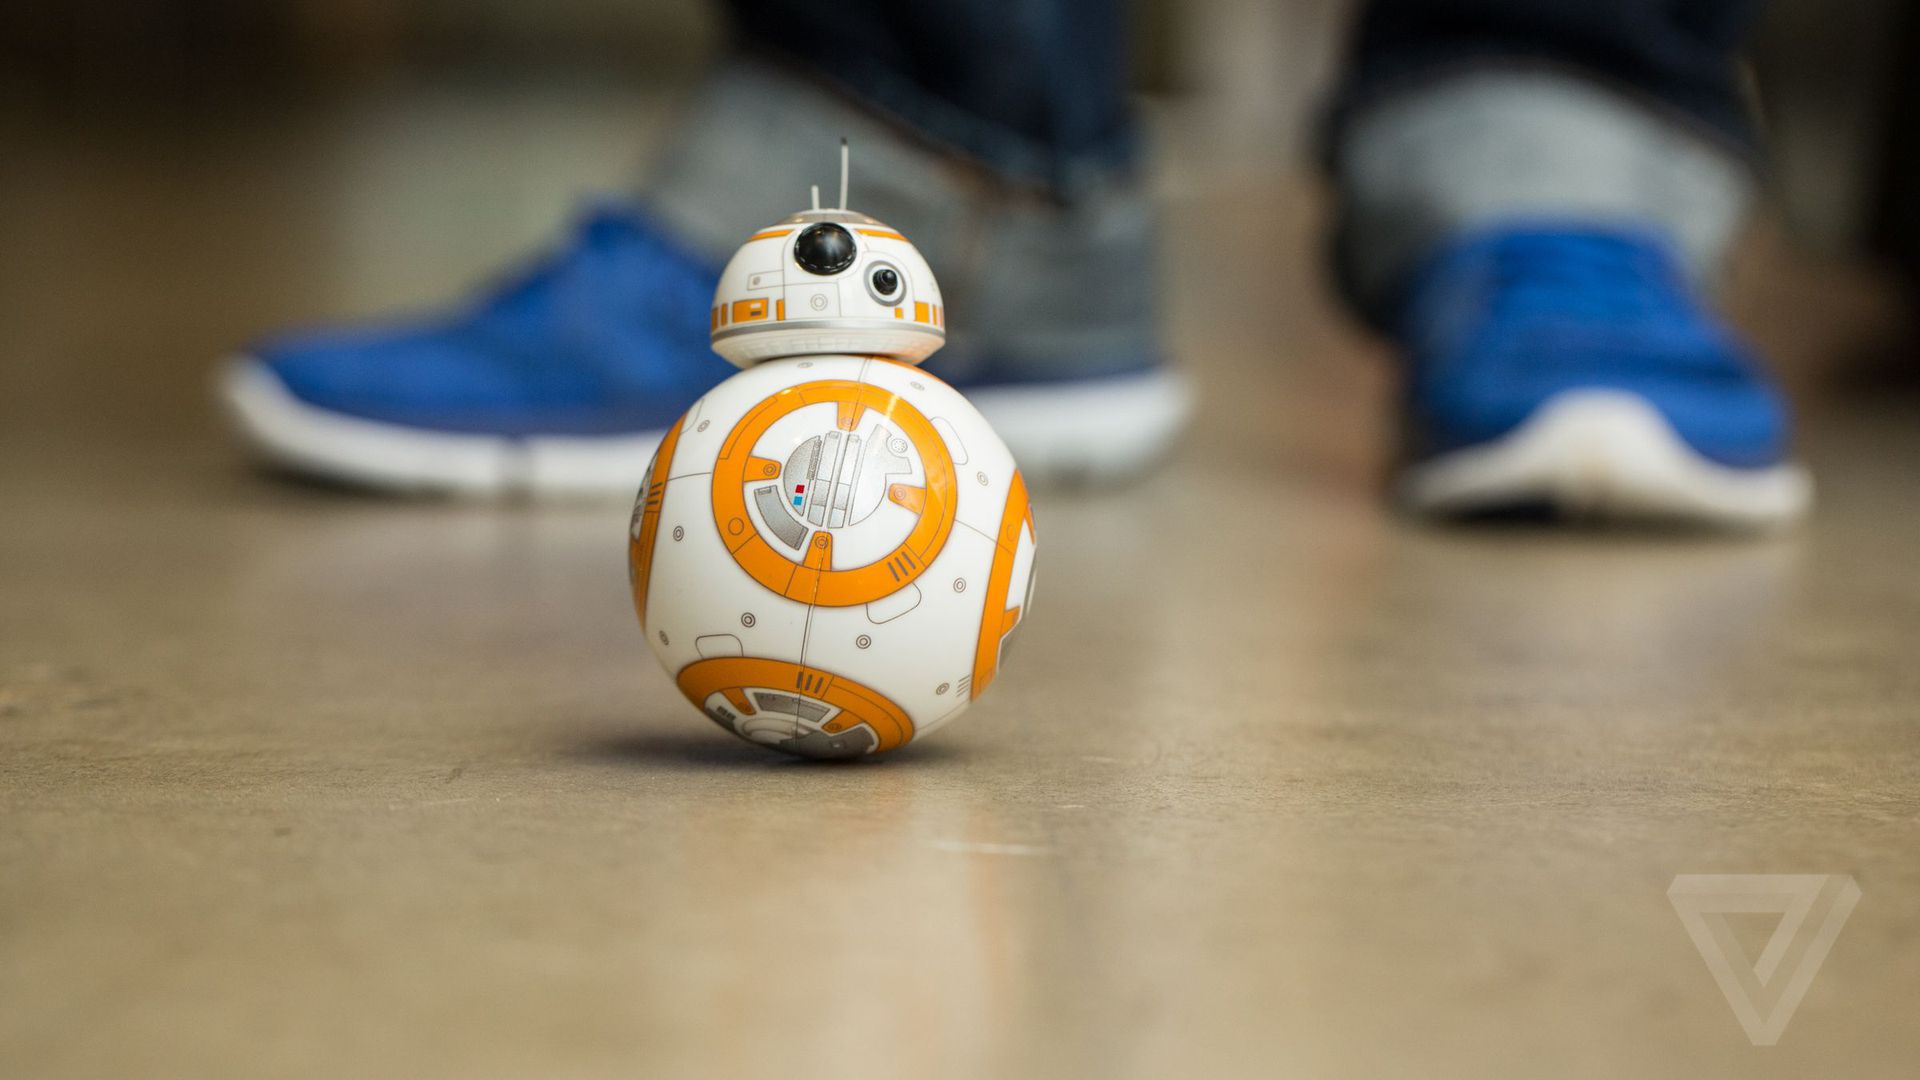 best website 16b2e 95a97 You can now buy Star Wars  adorable BB-8 droid and let it patrol your home    The Verge